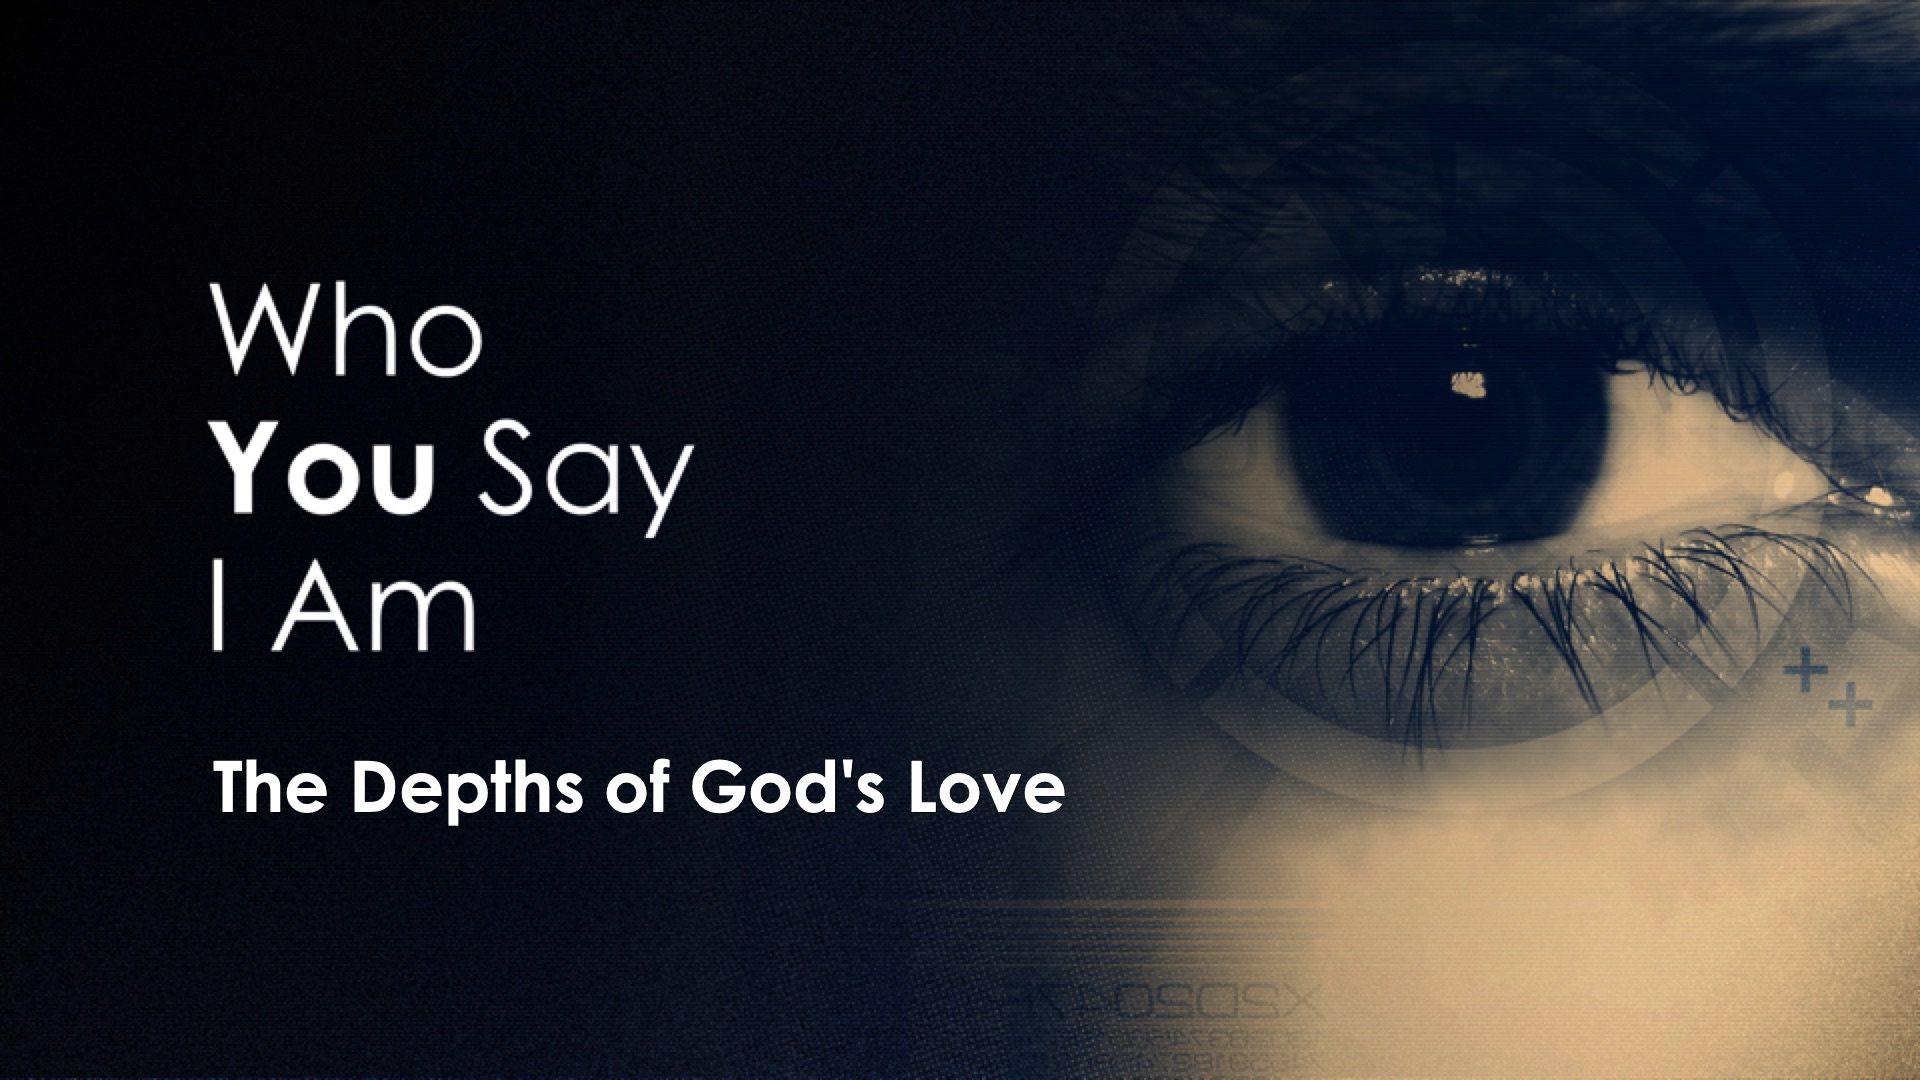 The Depths Of God's Love